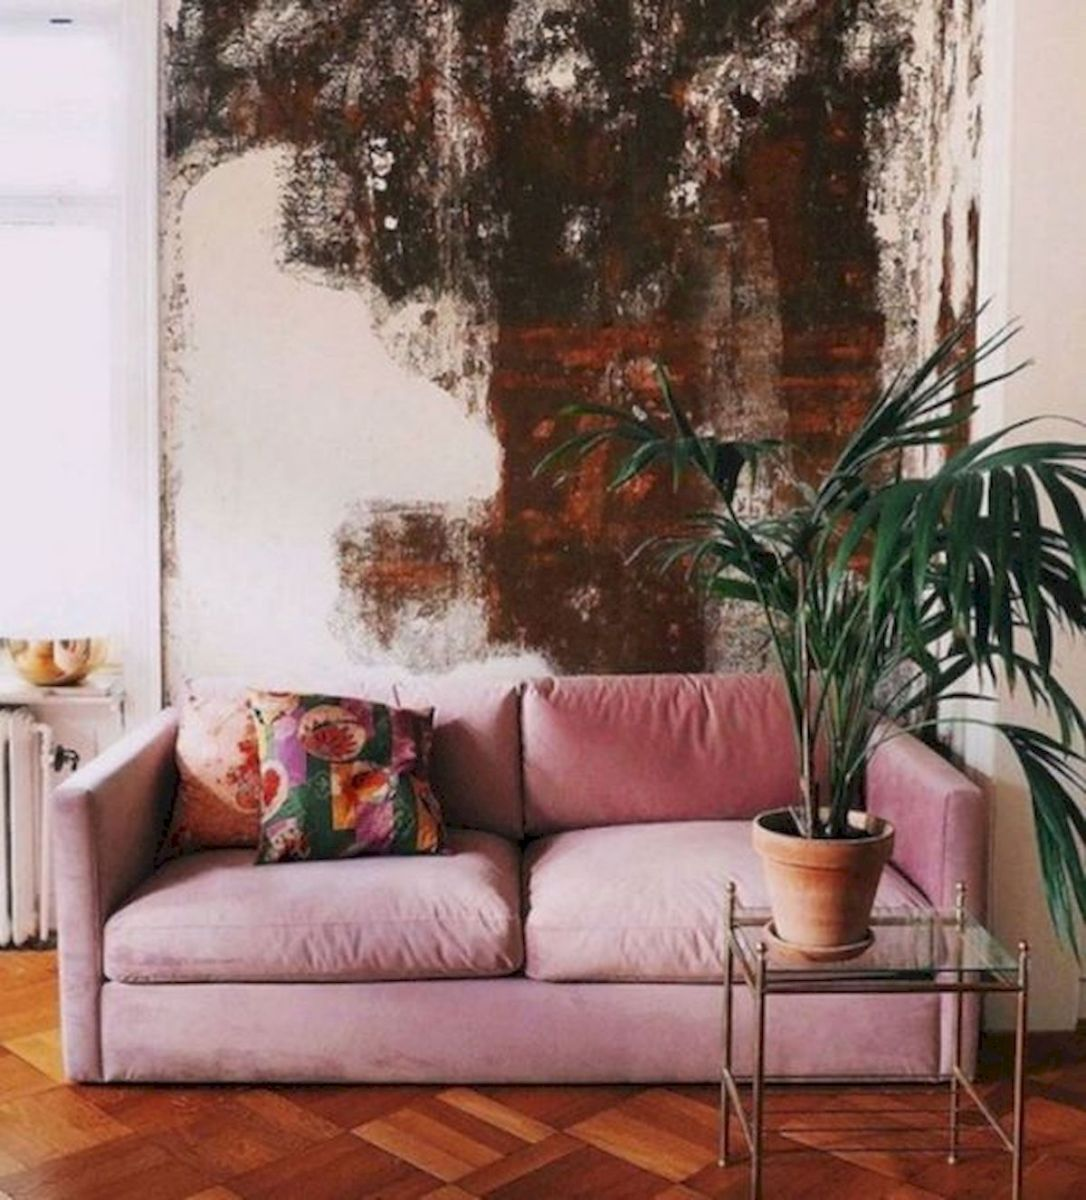 111 Awesome Art Decoration for Your Home (30)